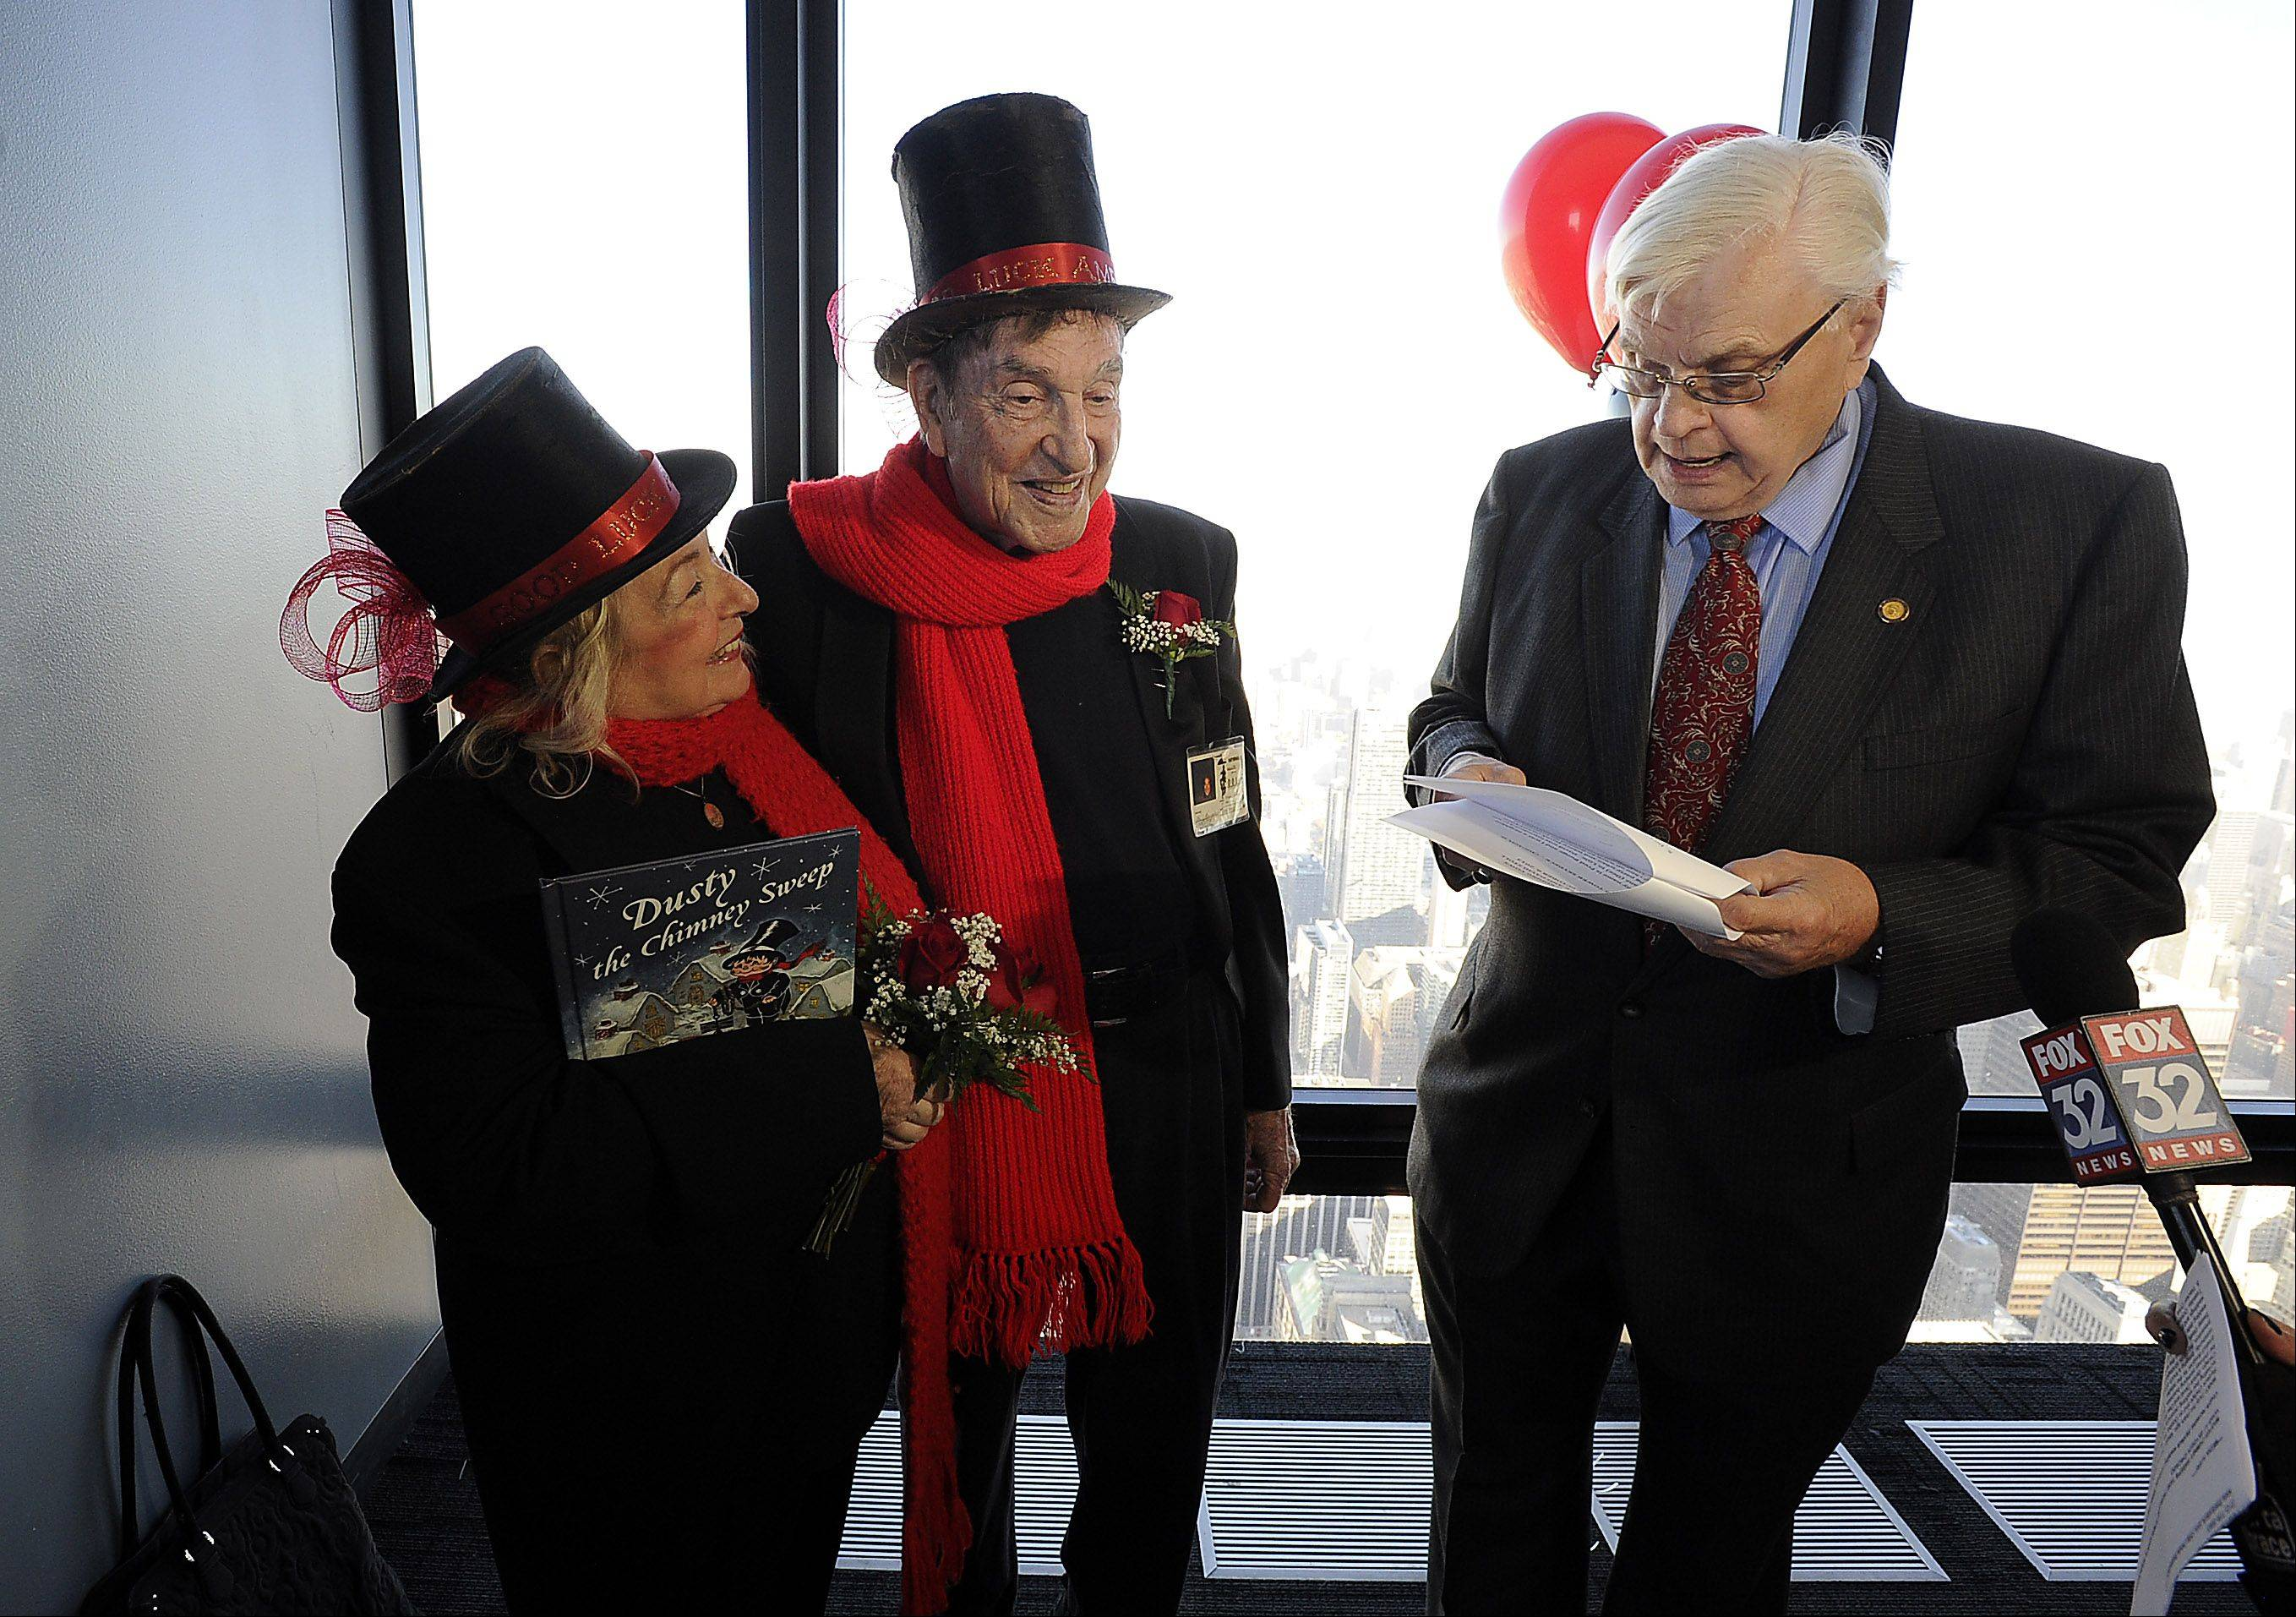 Longtime friend Fred Bunge of Batavia, right, helps David and Dee Stoll renew their wedding vows 35 years after the chimney sweeps from Roselle were married atop Chicago's tallest building.